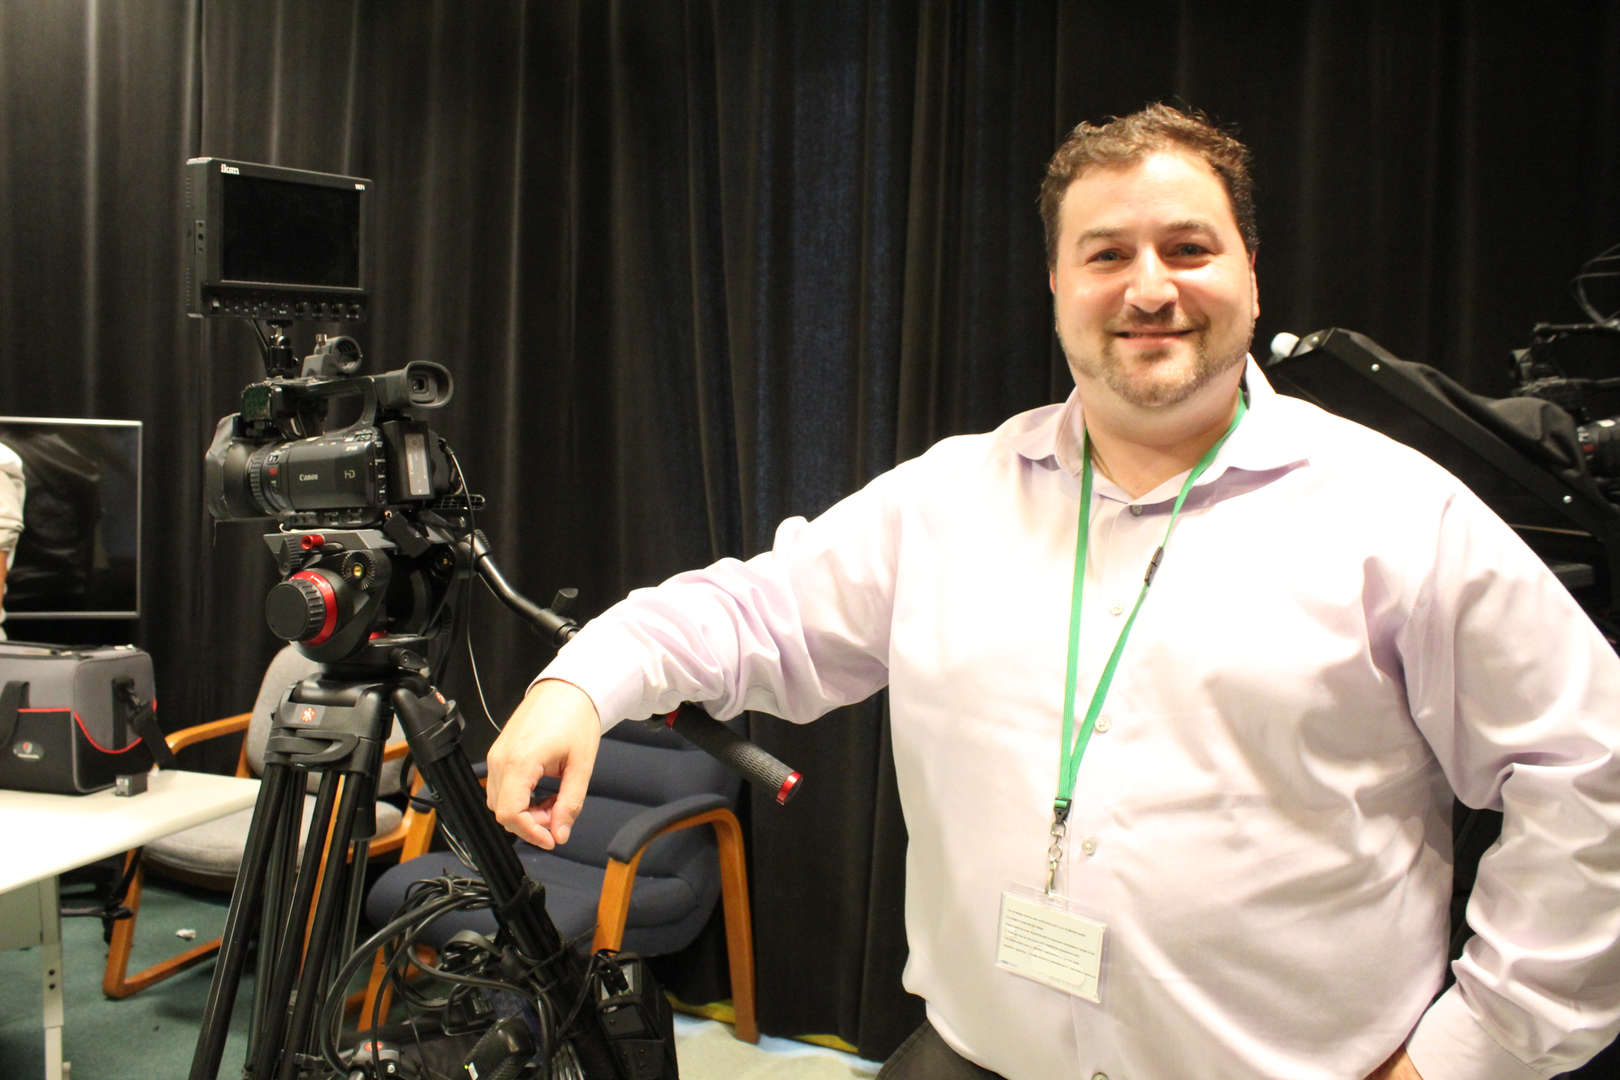 Man standing next to video camera